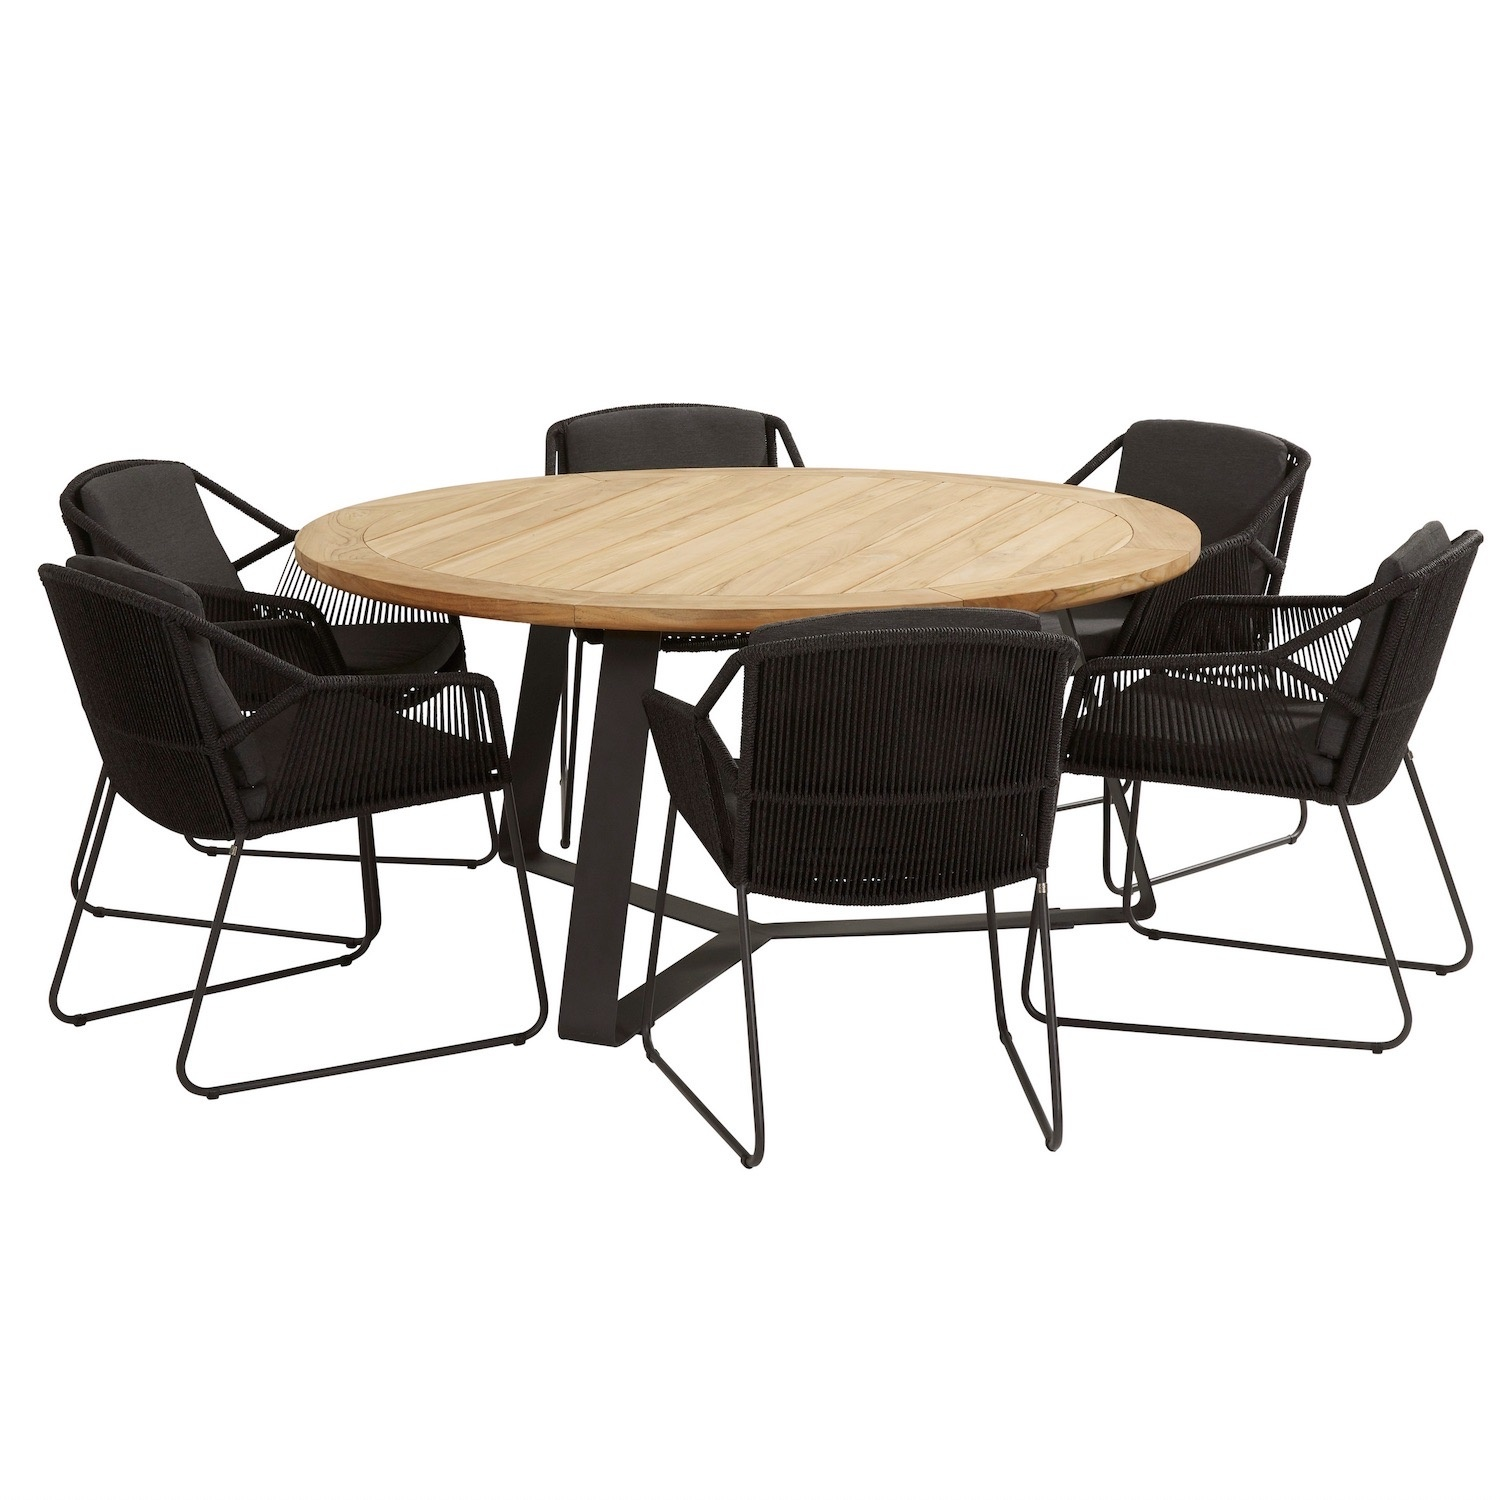 Accor Basso dining tuinset 7-delig 160cm rond 4 Seasons Outdoor